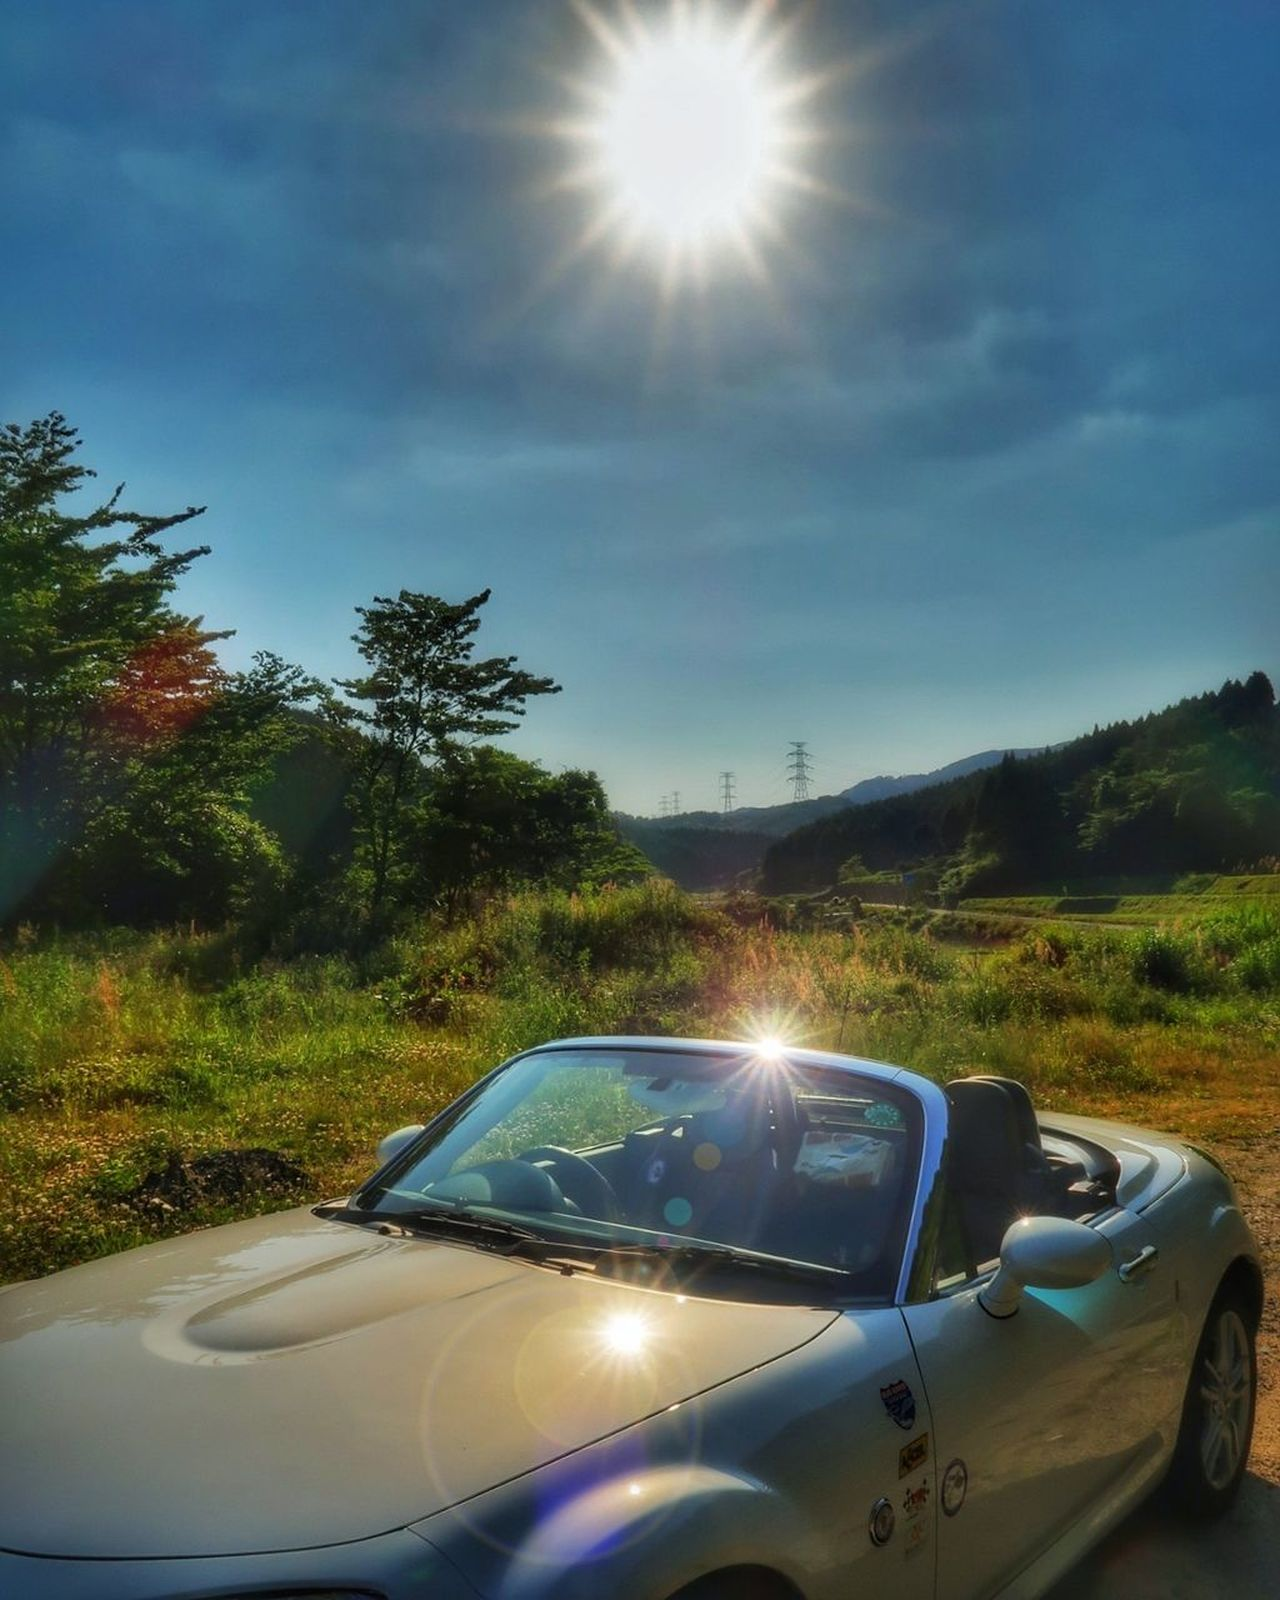 広域農道マニア 広域農道 青空 いま空 空 太陽 山 道路 マツダ ロードスター Mazda Mx5 Miata Car Road Trip Sun Landscape Sky Outdoors Day Sunlight Lens Flare Tree The Way Forward Beautifulview